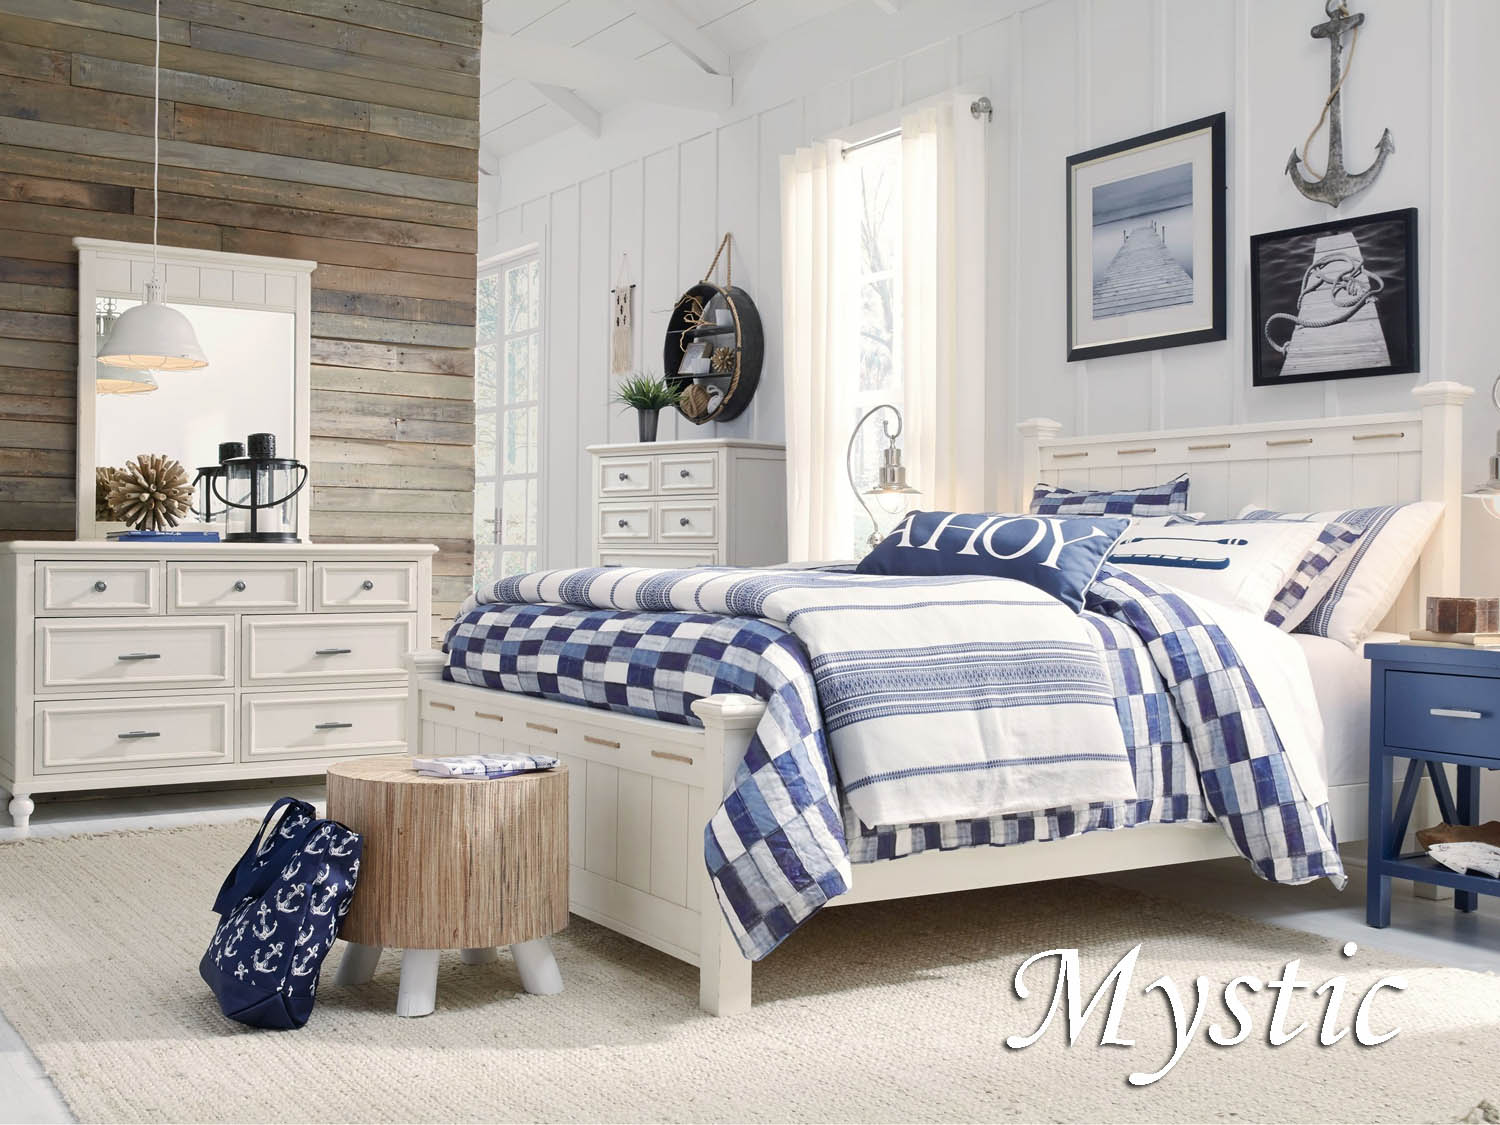 Mystic, White, bedroom, master, guest, youth, kids, bed, dresser, mirror, chest, night stand, coastal, seaside, Barbo's Furniture